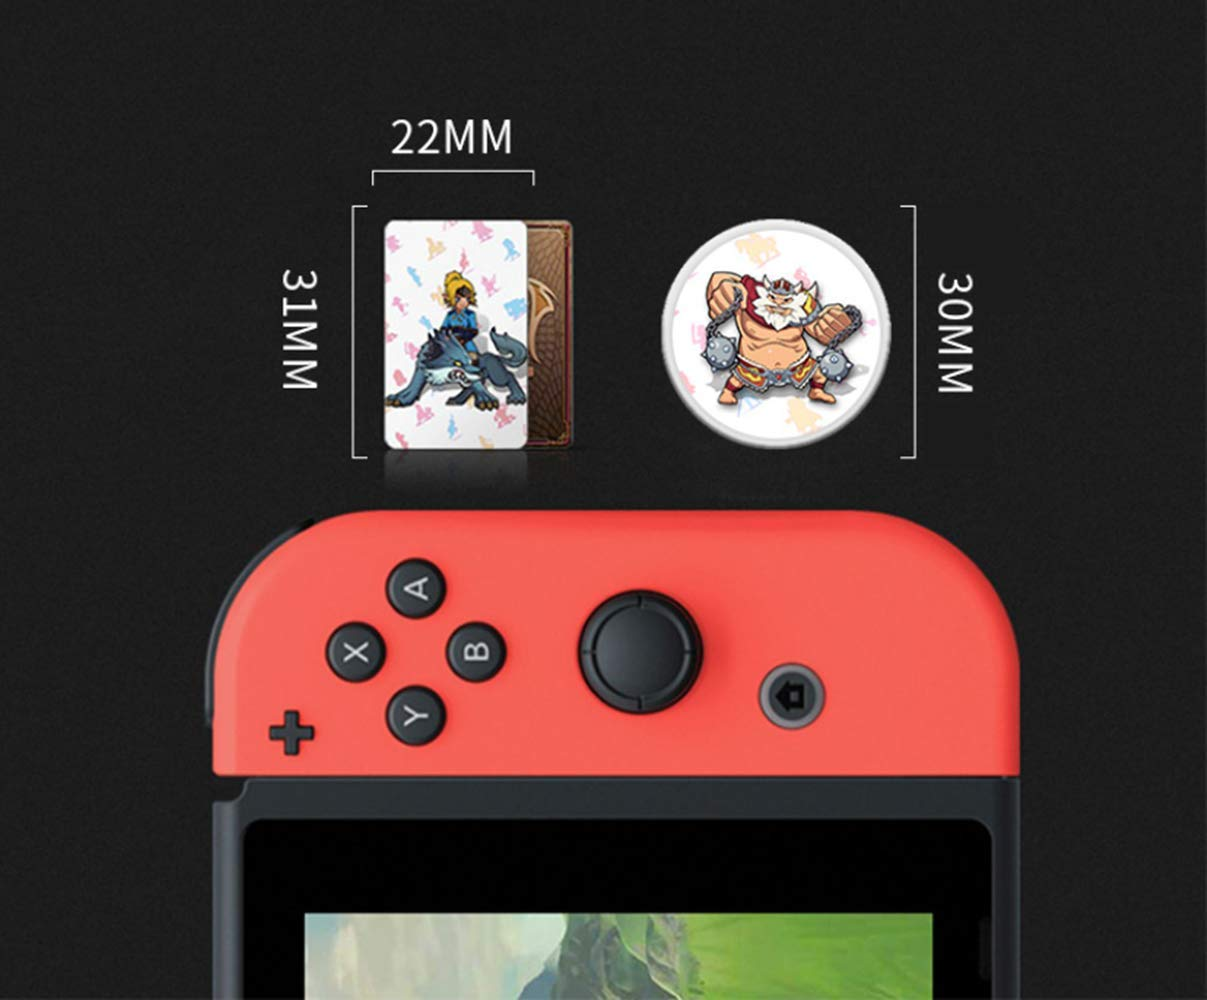 BotW 23pcs Nfc Game Cards for the Legend of Zelda Breath of the Wild Switch Wii U with Crystal Case